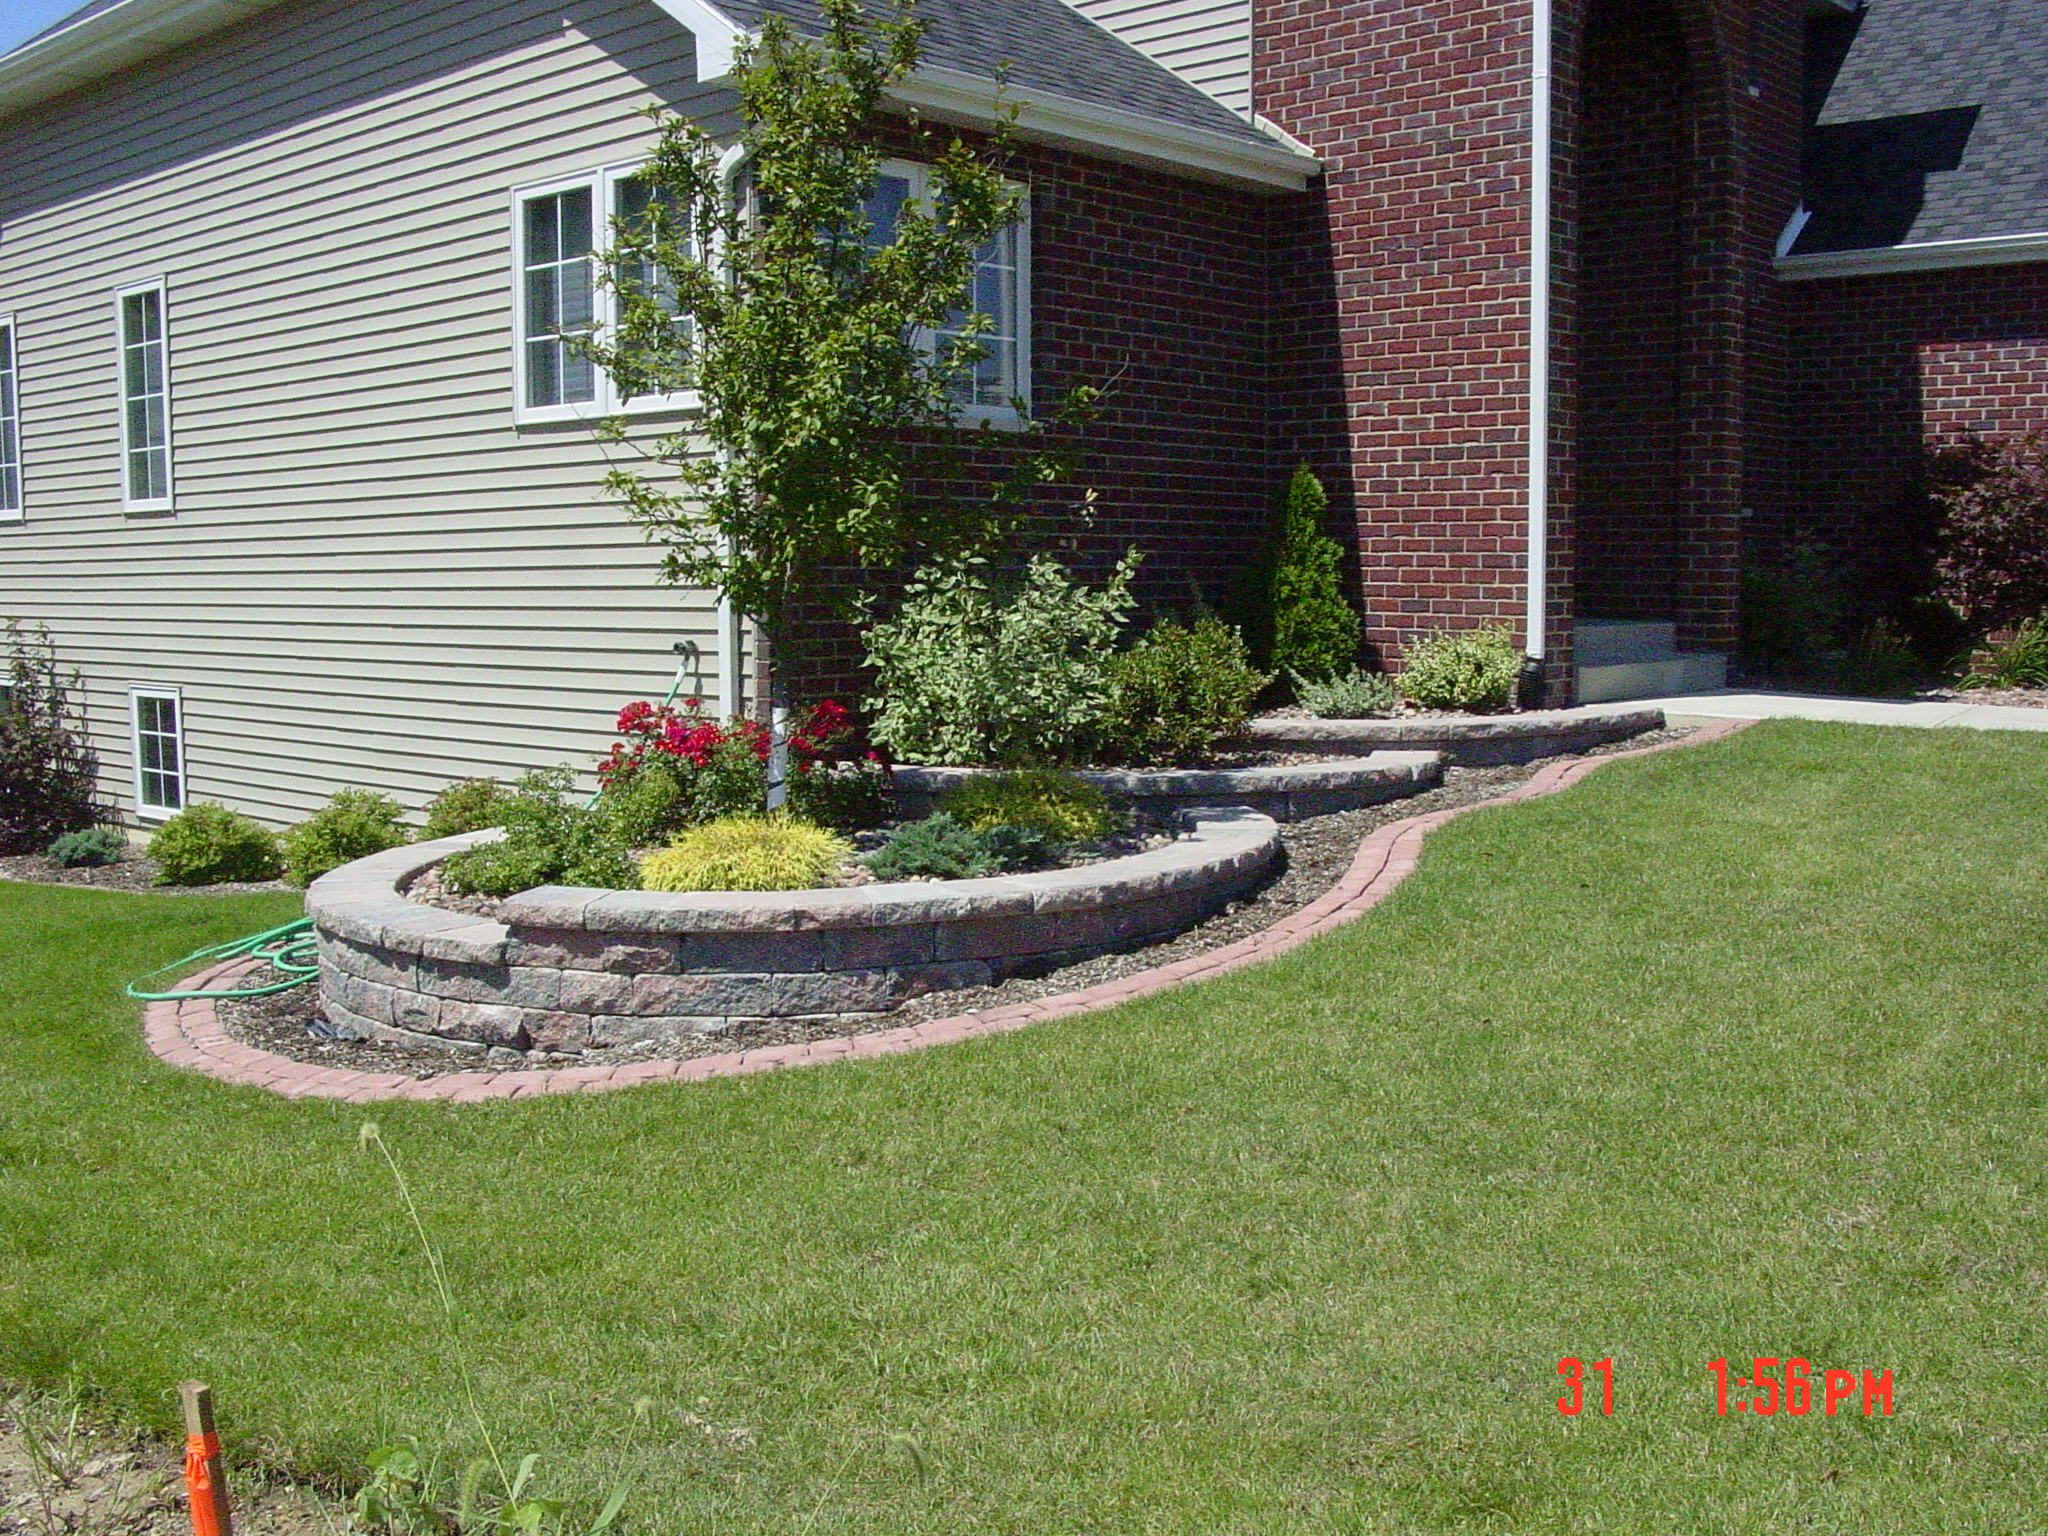 Stepped Retaining Wall Blocks